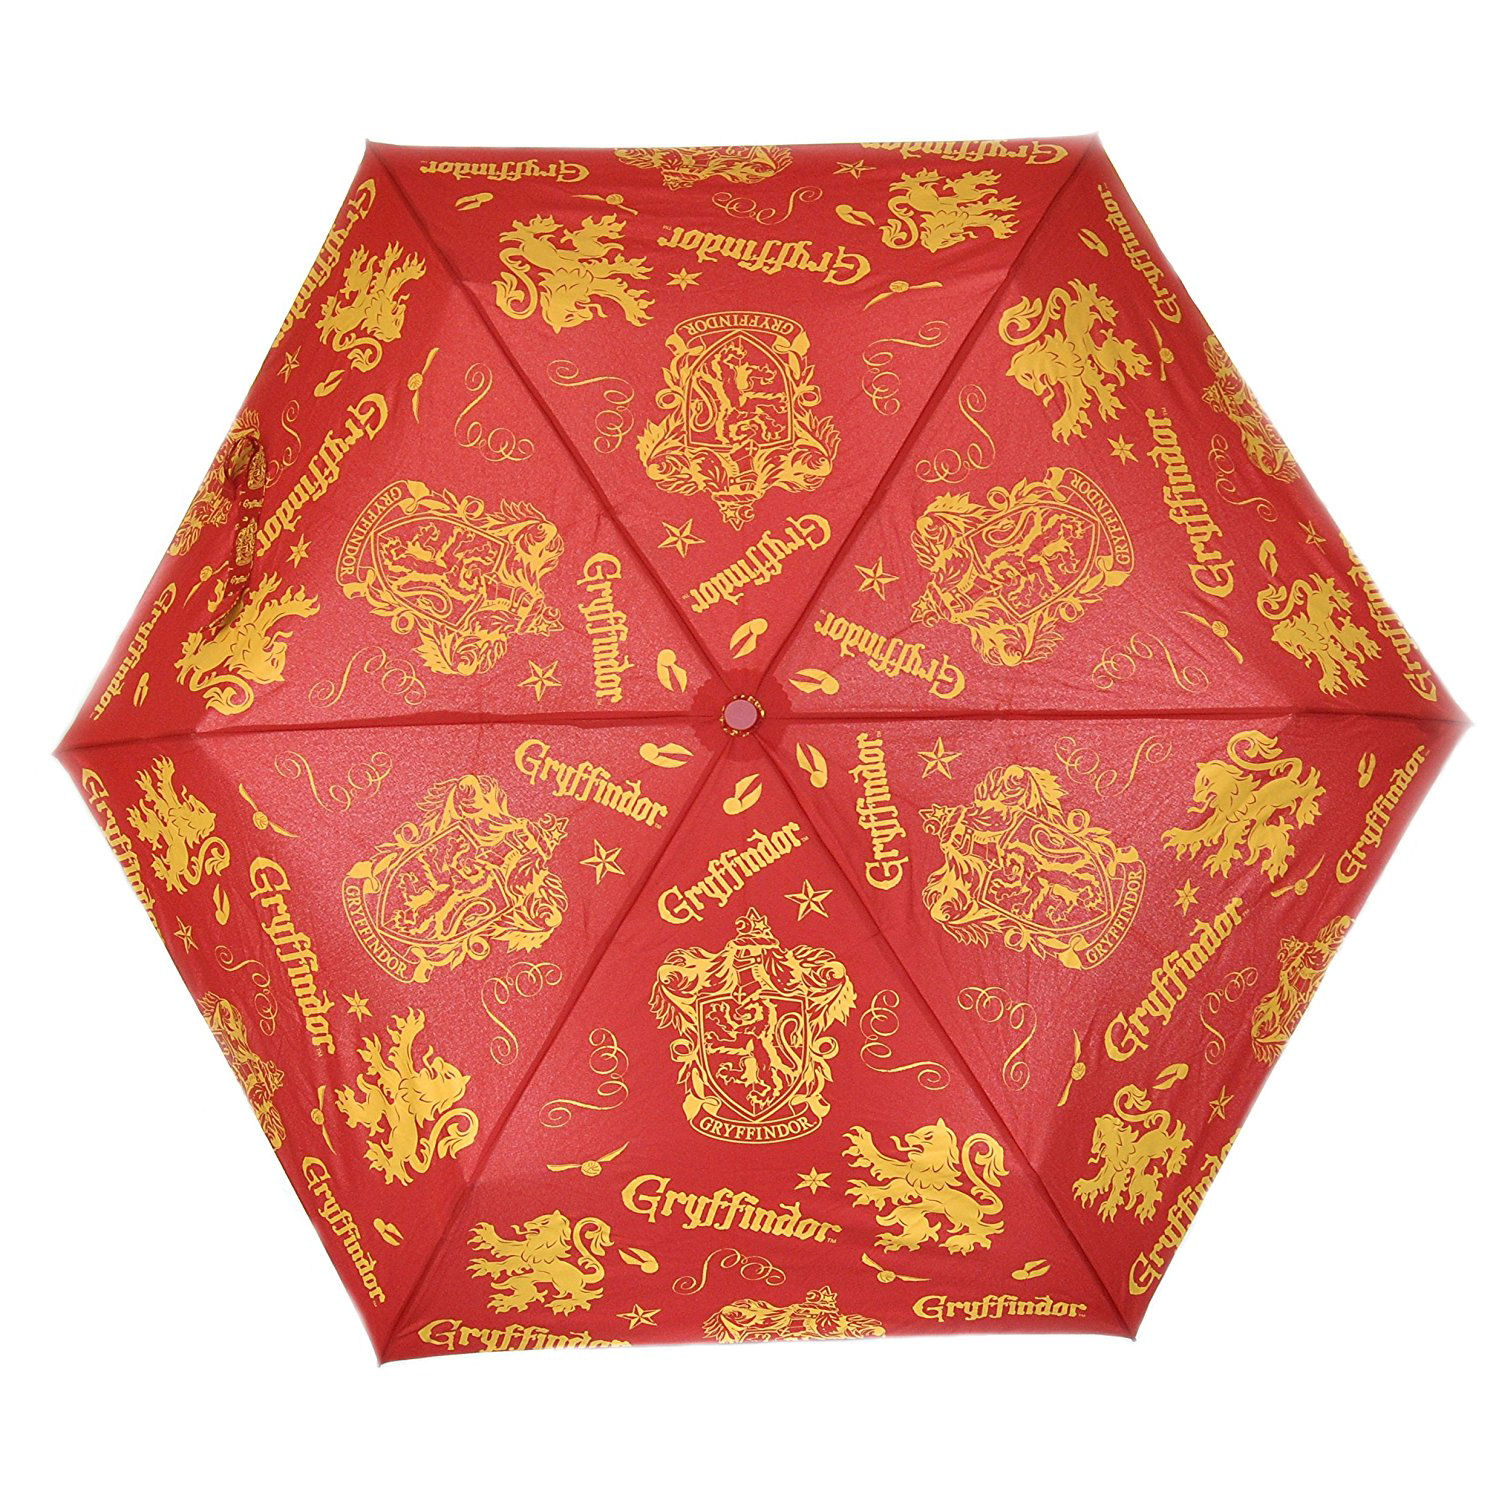 Harry Potter Gryffindor Crest Folding Umbrella